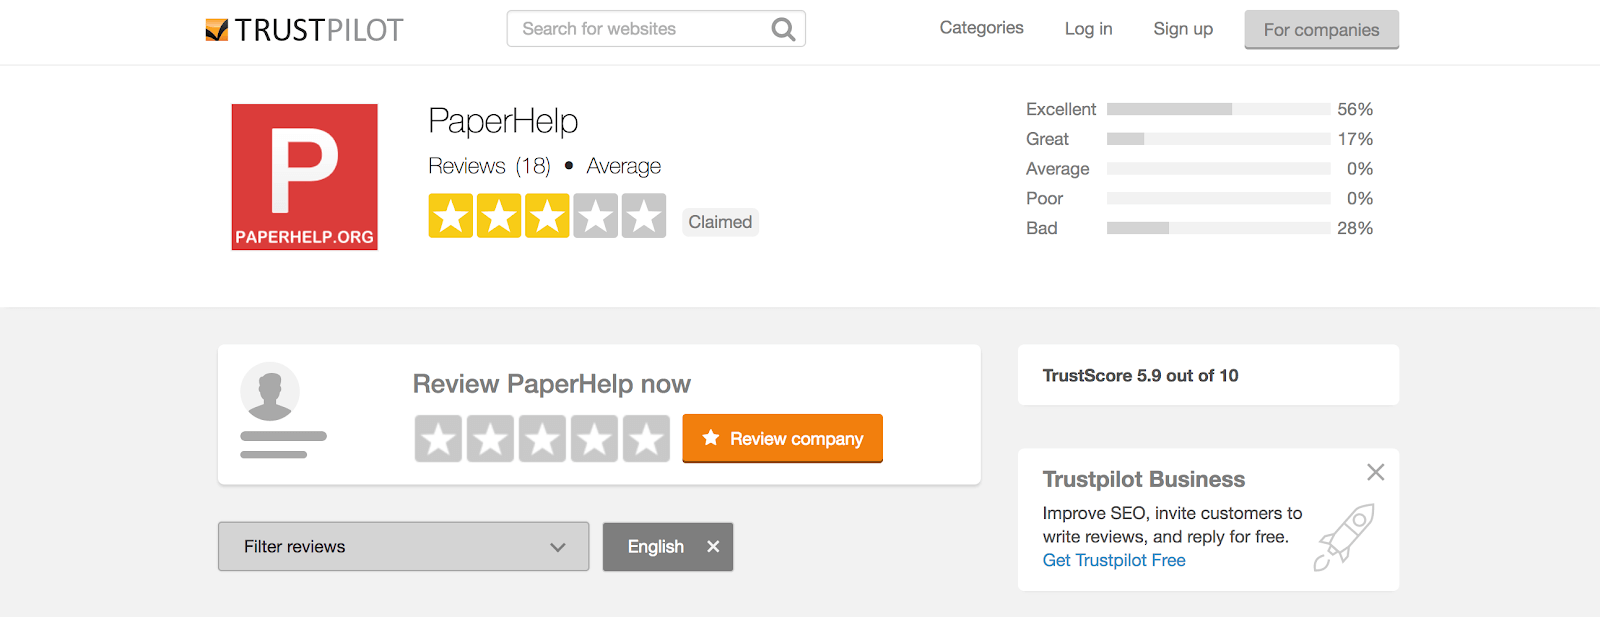 paperhelp reviews at trustpilot